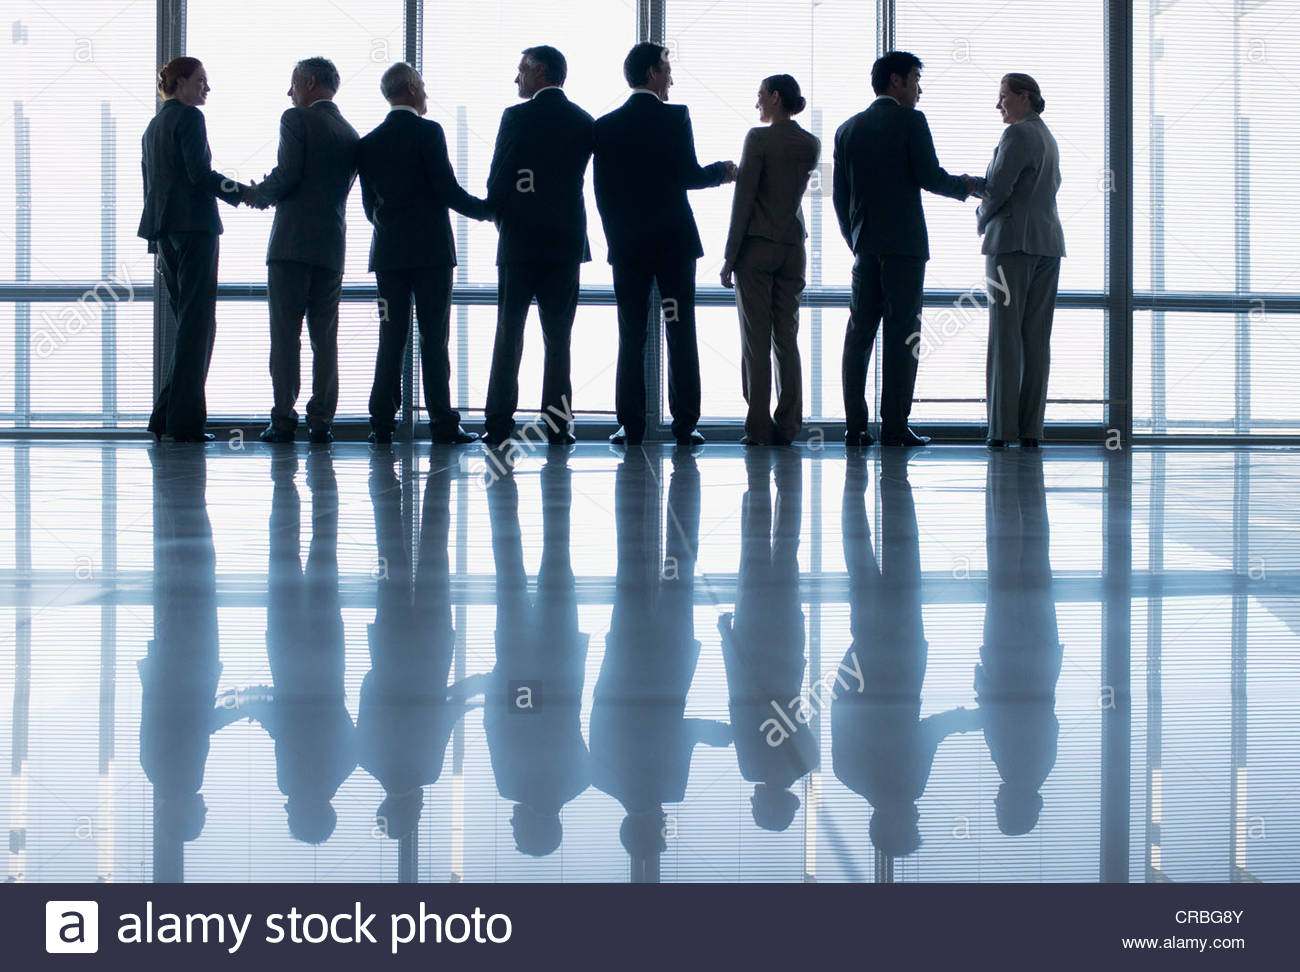 Business people shaking hands in a row at lobby window - Stock Image